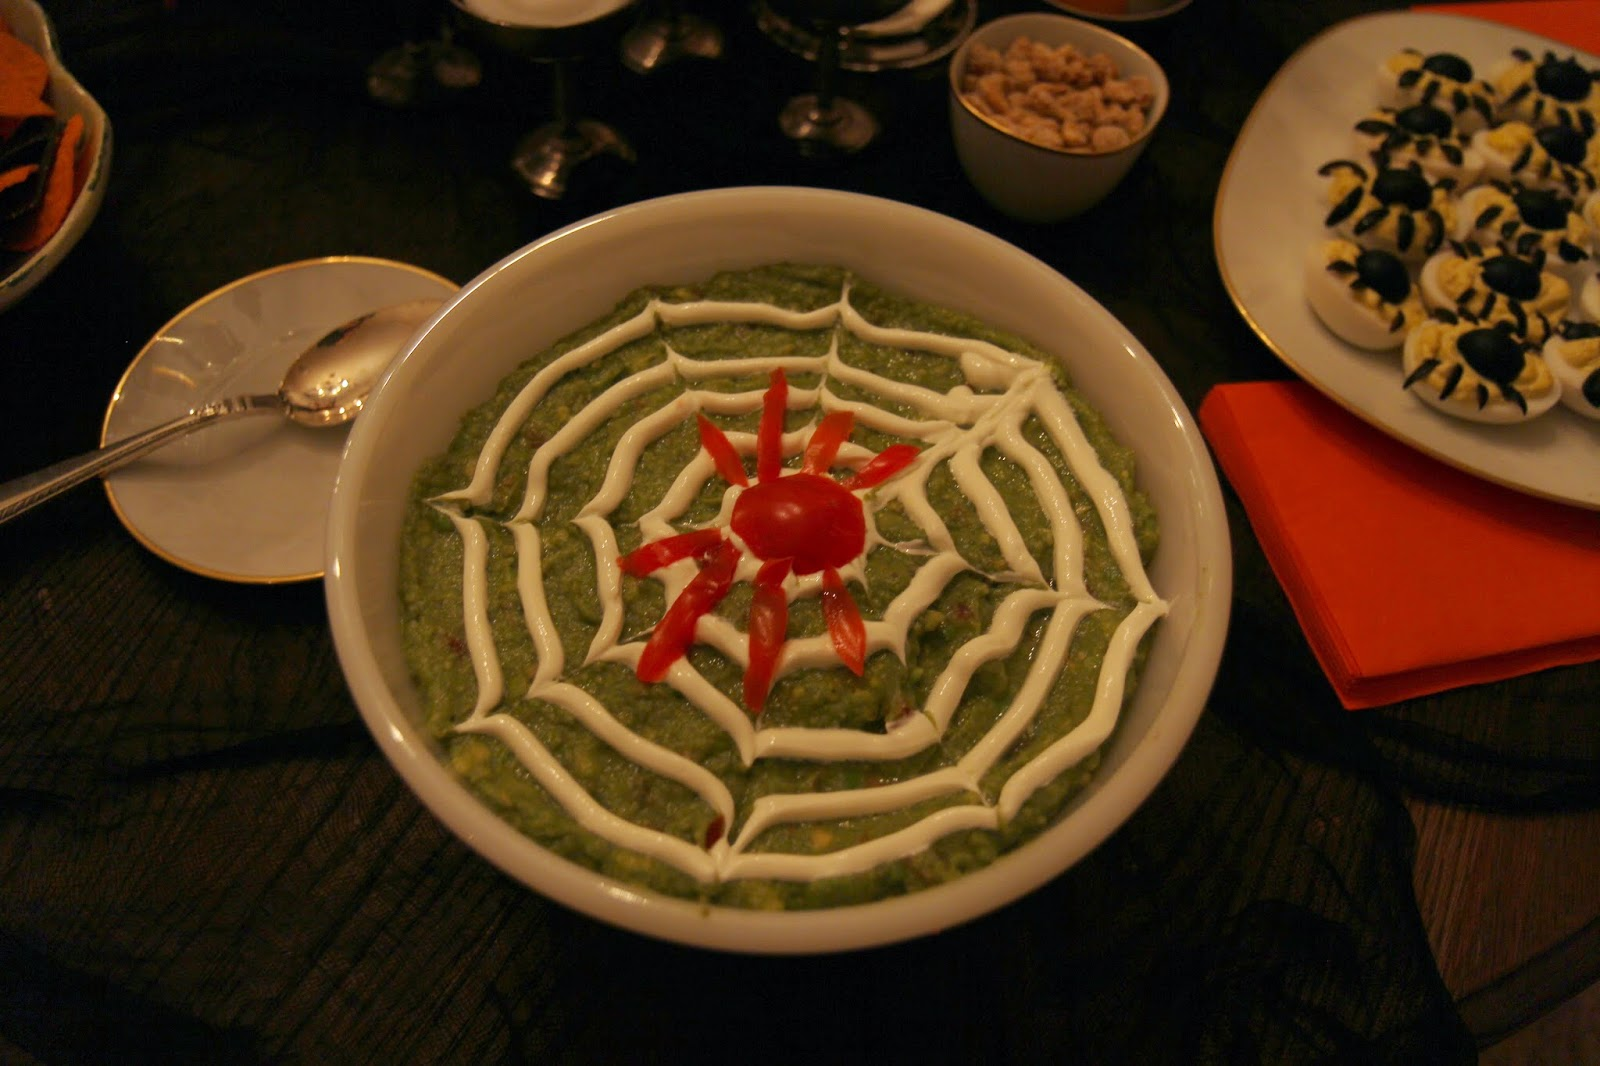 Guacamole with Sour Cream Spiderweb 2: Spooky Glam Halloween Party